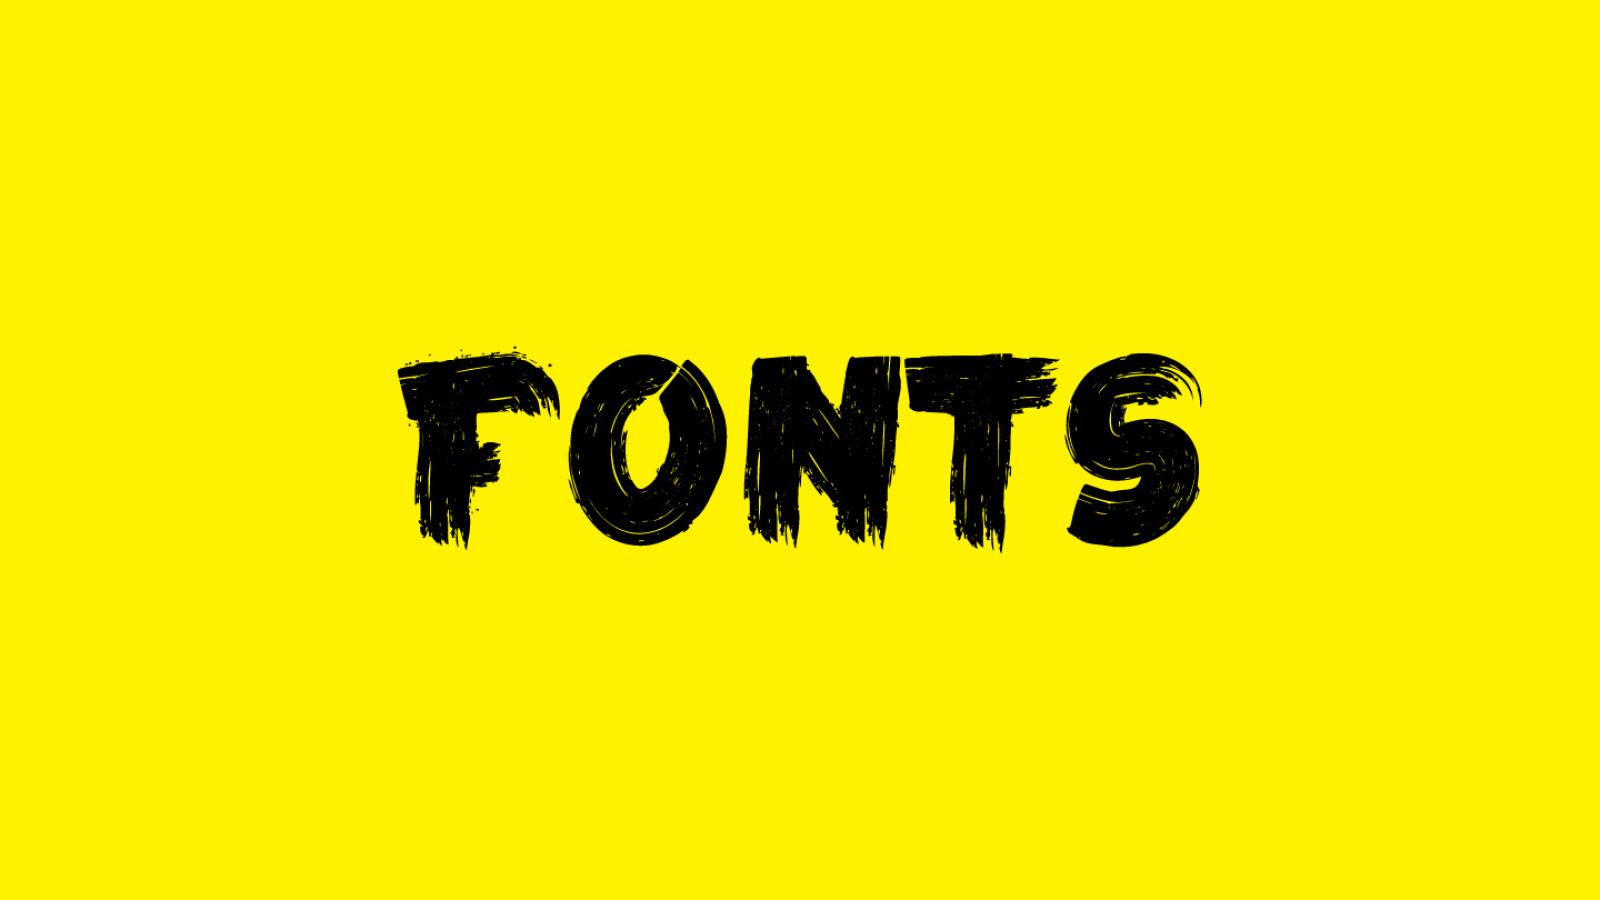 Friday Fresh Free Fonts - Frontenac, Simply Rounded, La Kame a Leon